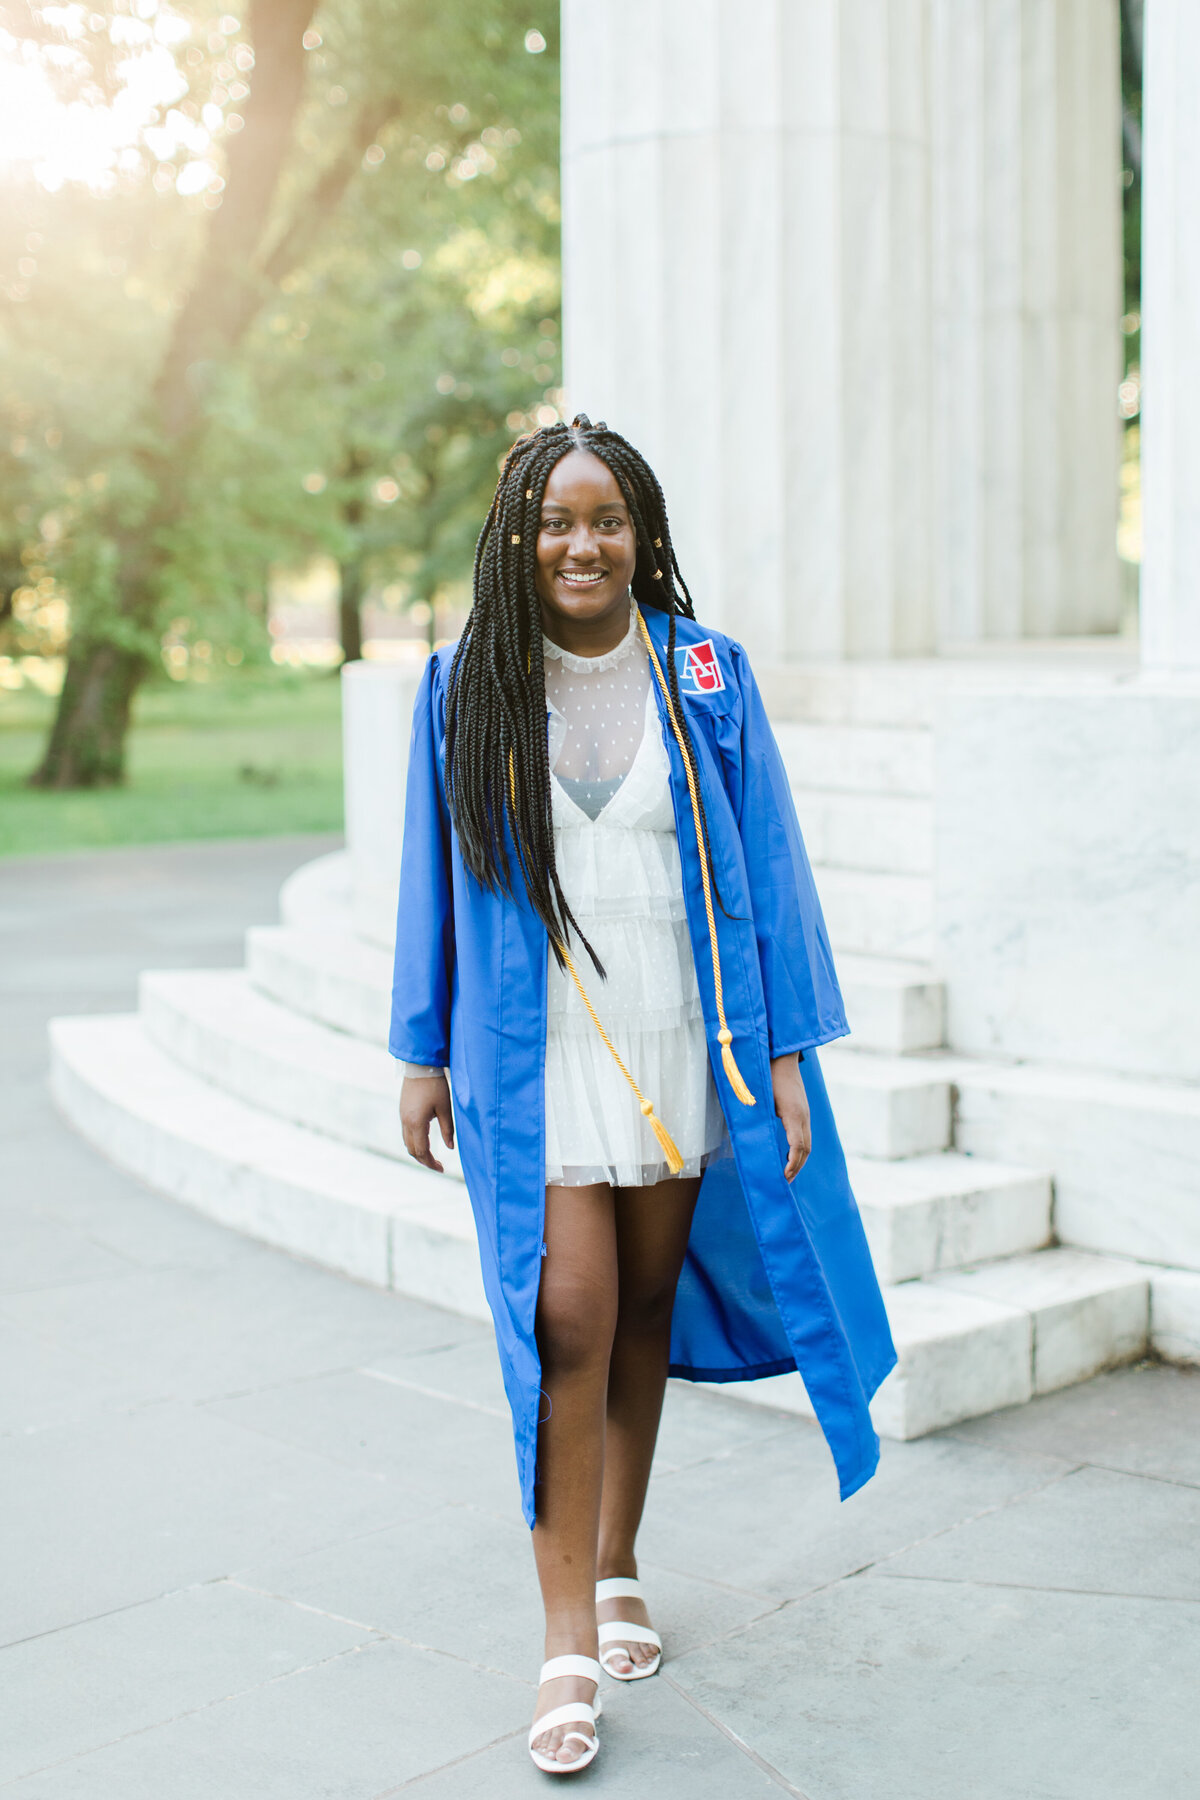 Mia_AmericanUniversity_Washington_DC_Senior_Graduation_Session_2020_Angelika_Johns_Photography-5110